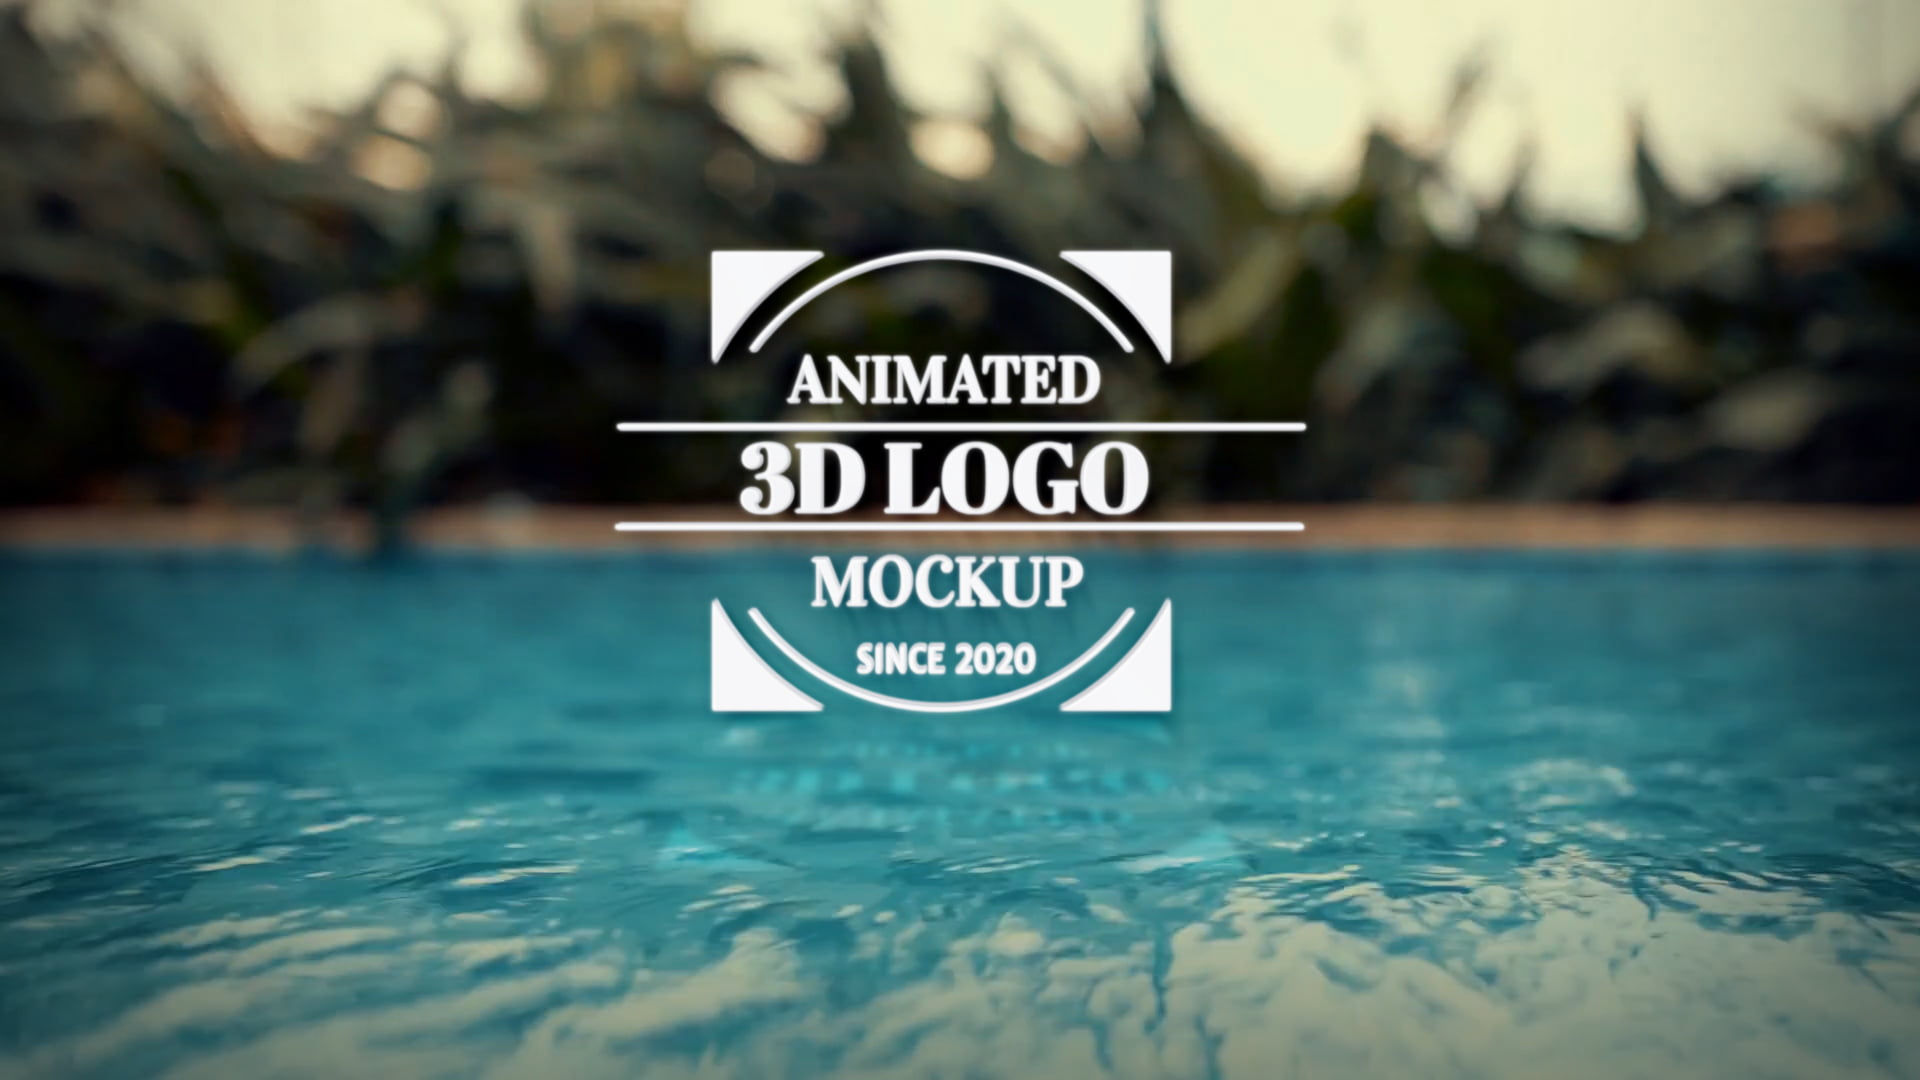 3D-ANIMATED-LOGO-MOCKUP-